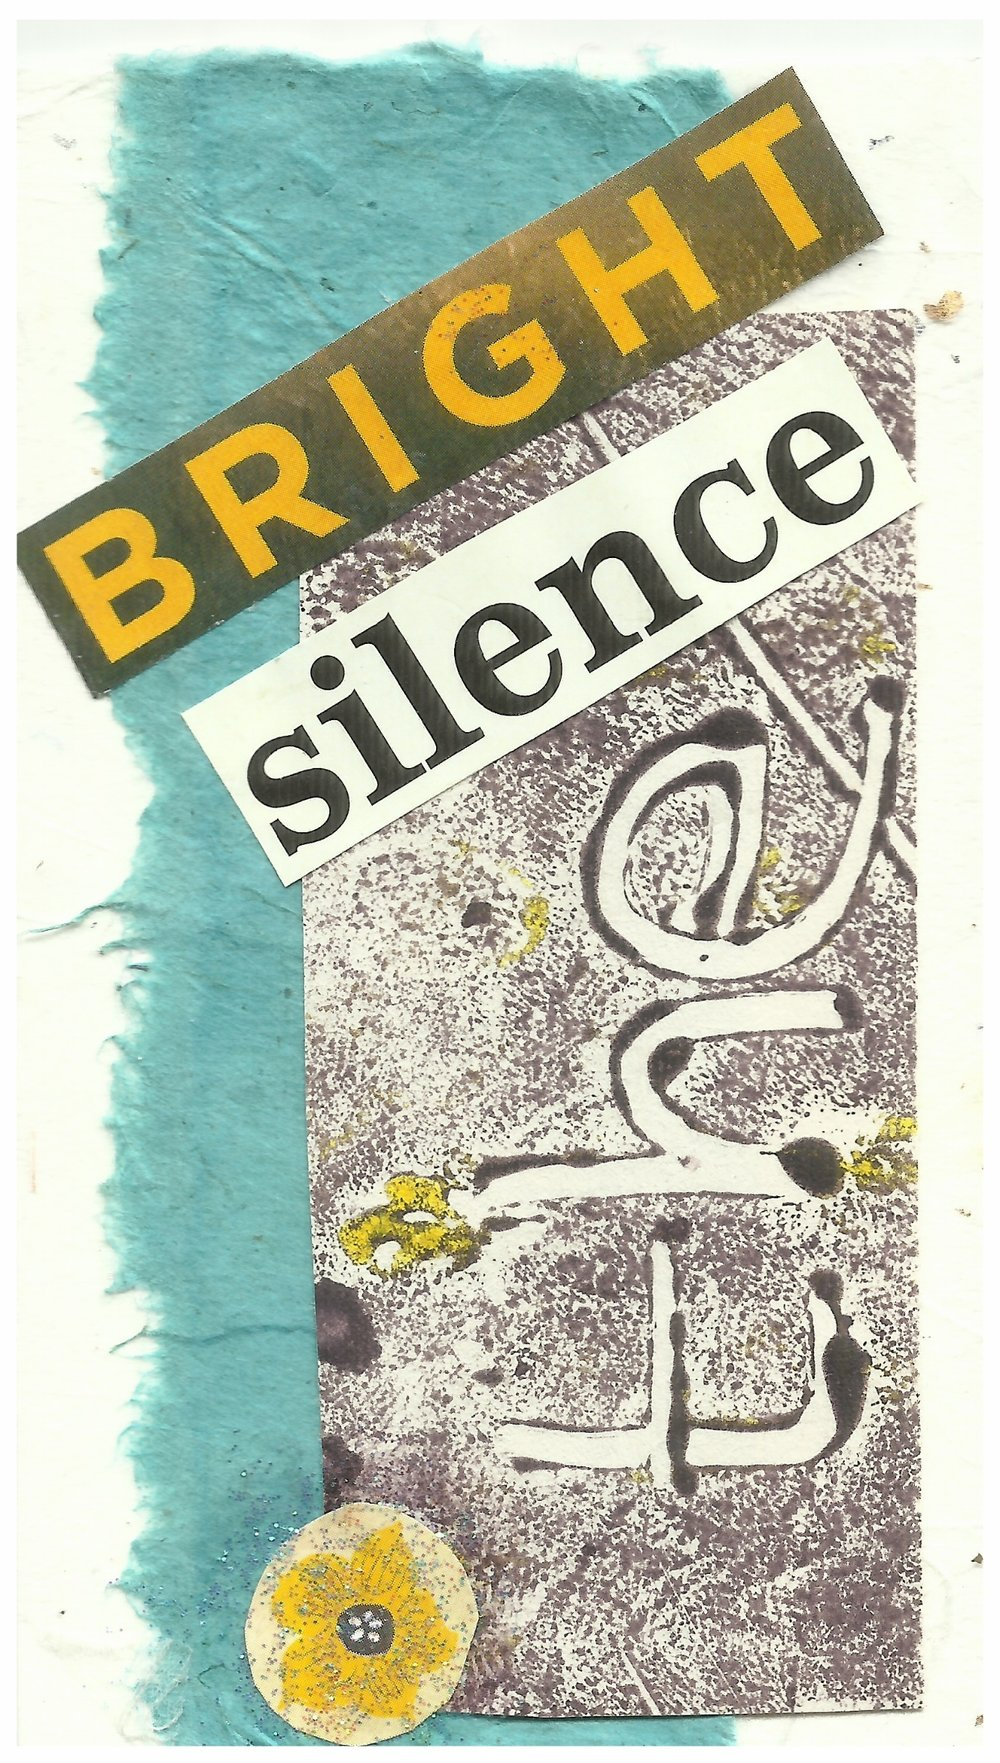 Bright Silence